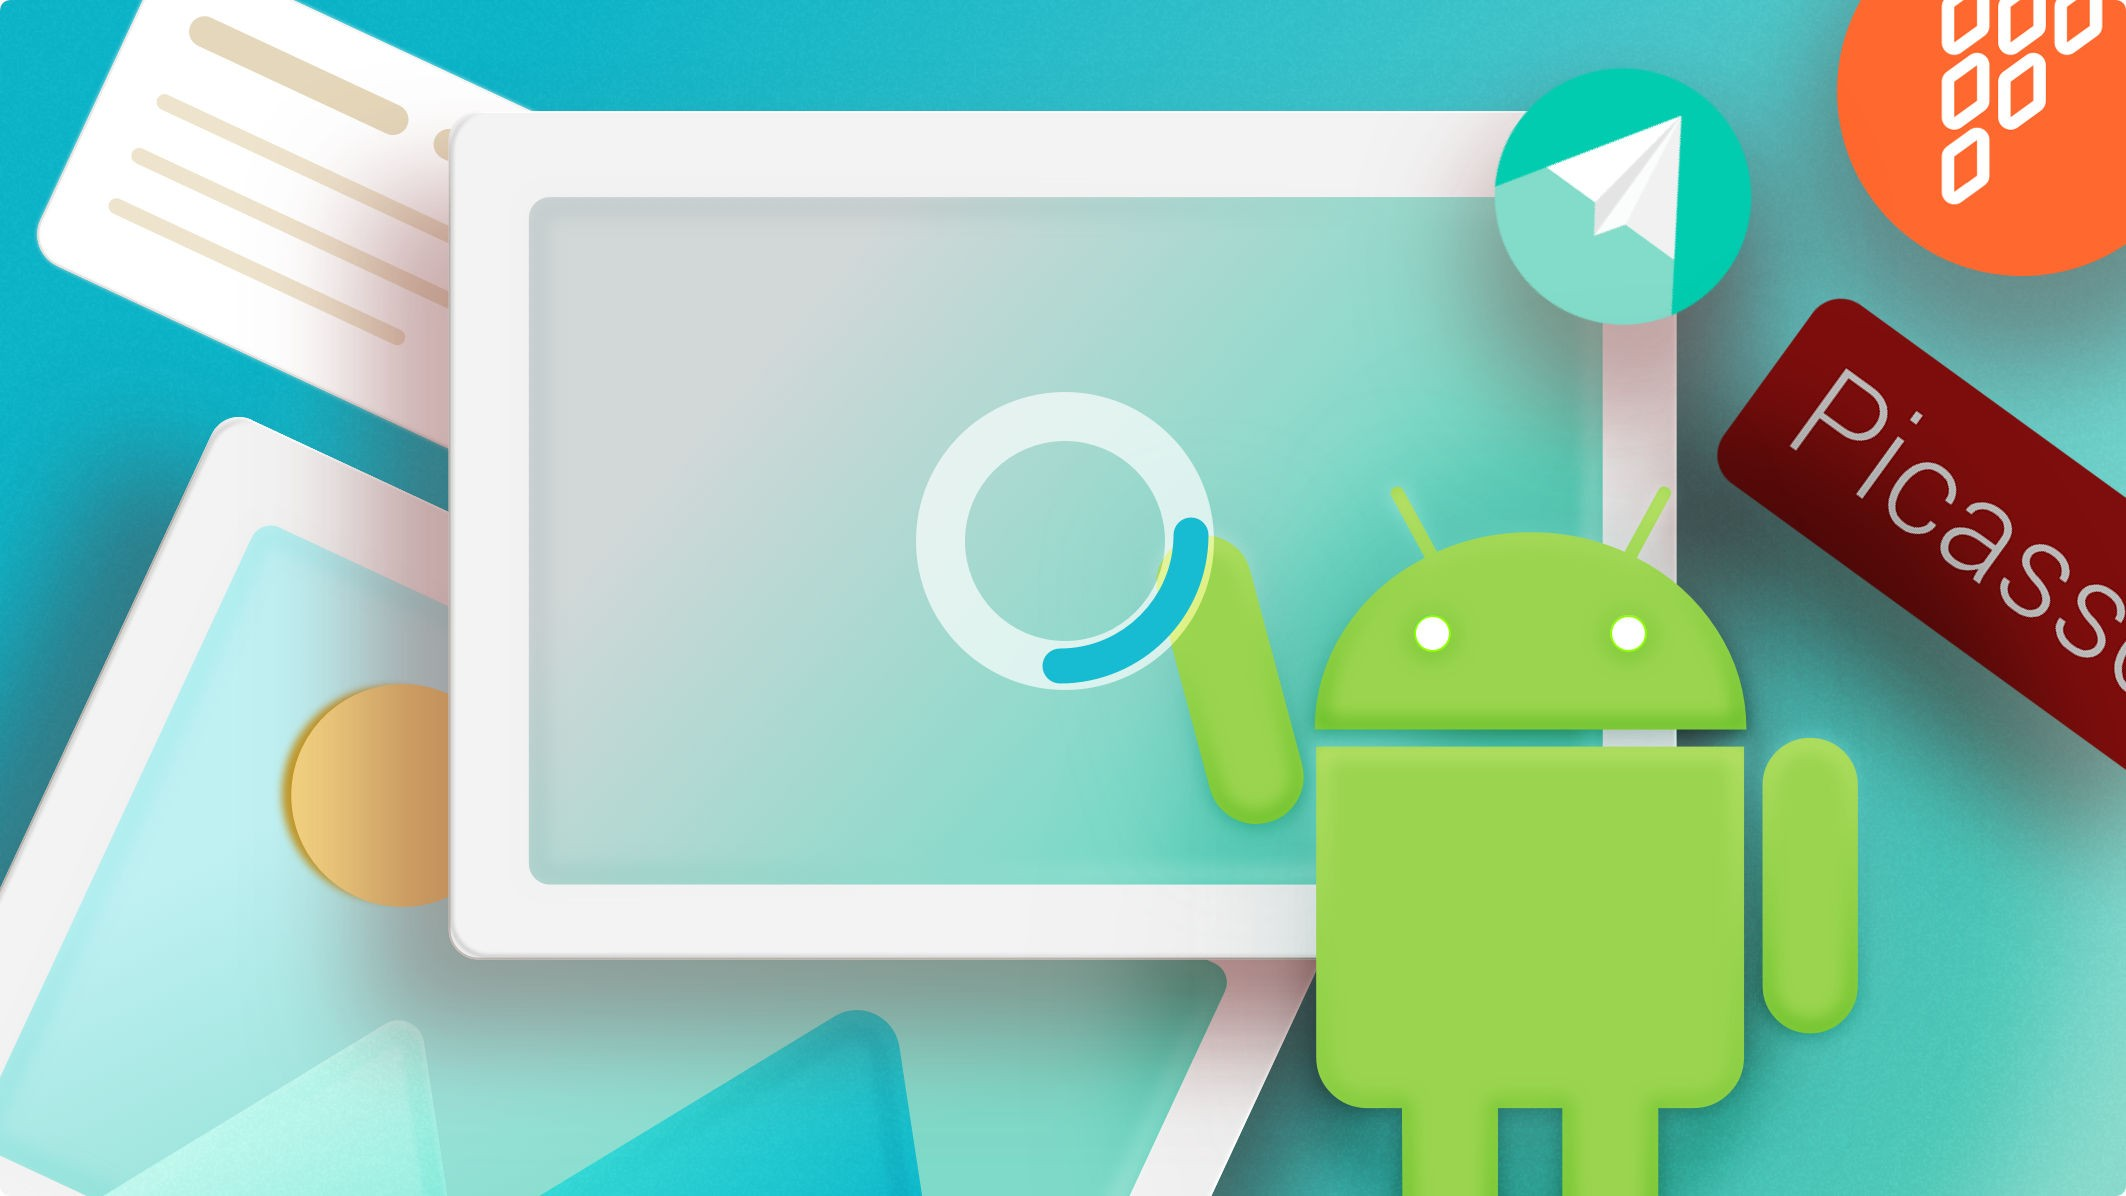 Animations in Android Image Loaders: Comparison of Picasso, Glide, and Fresco